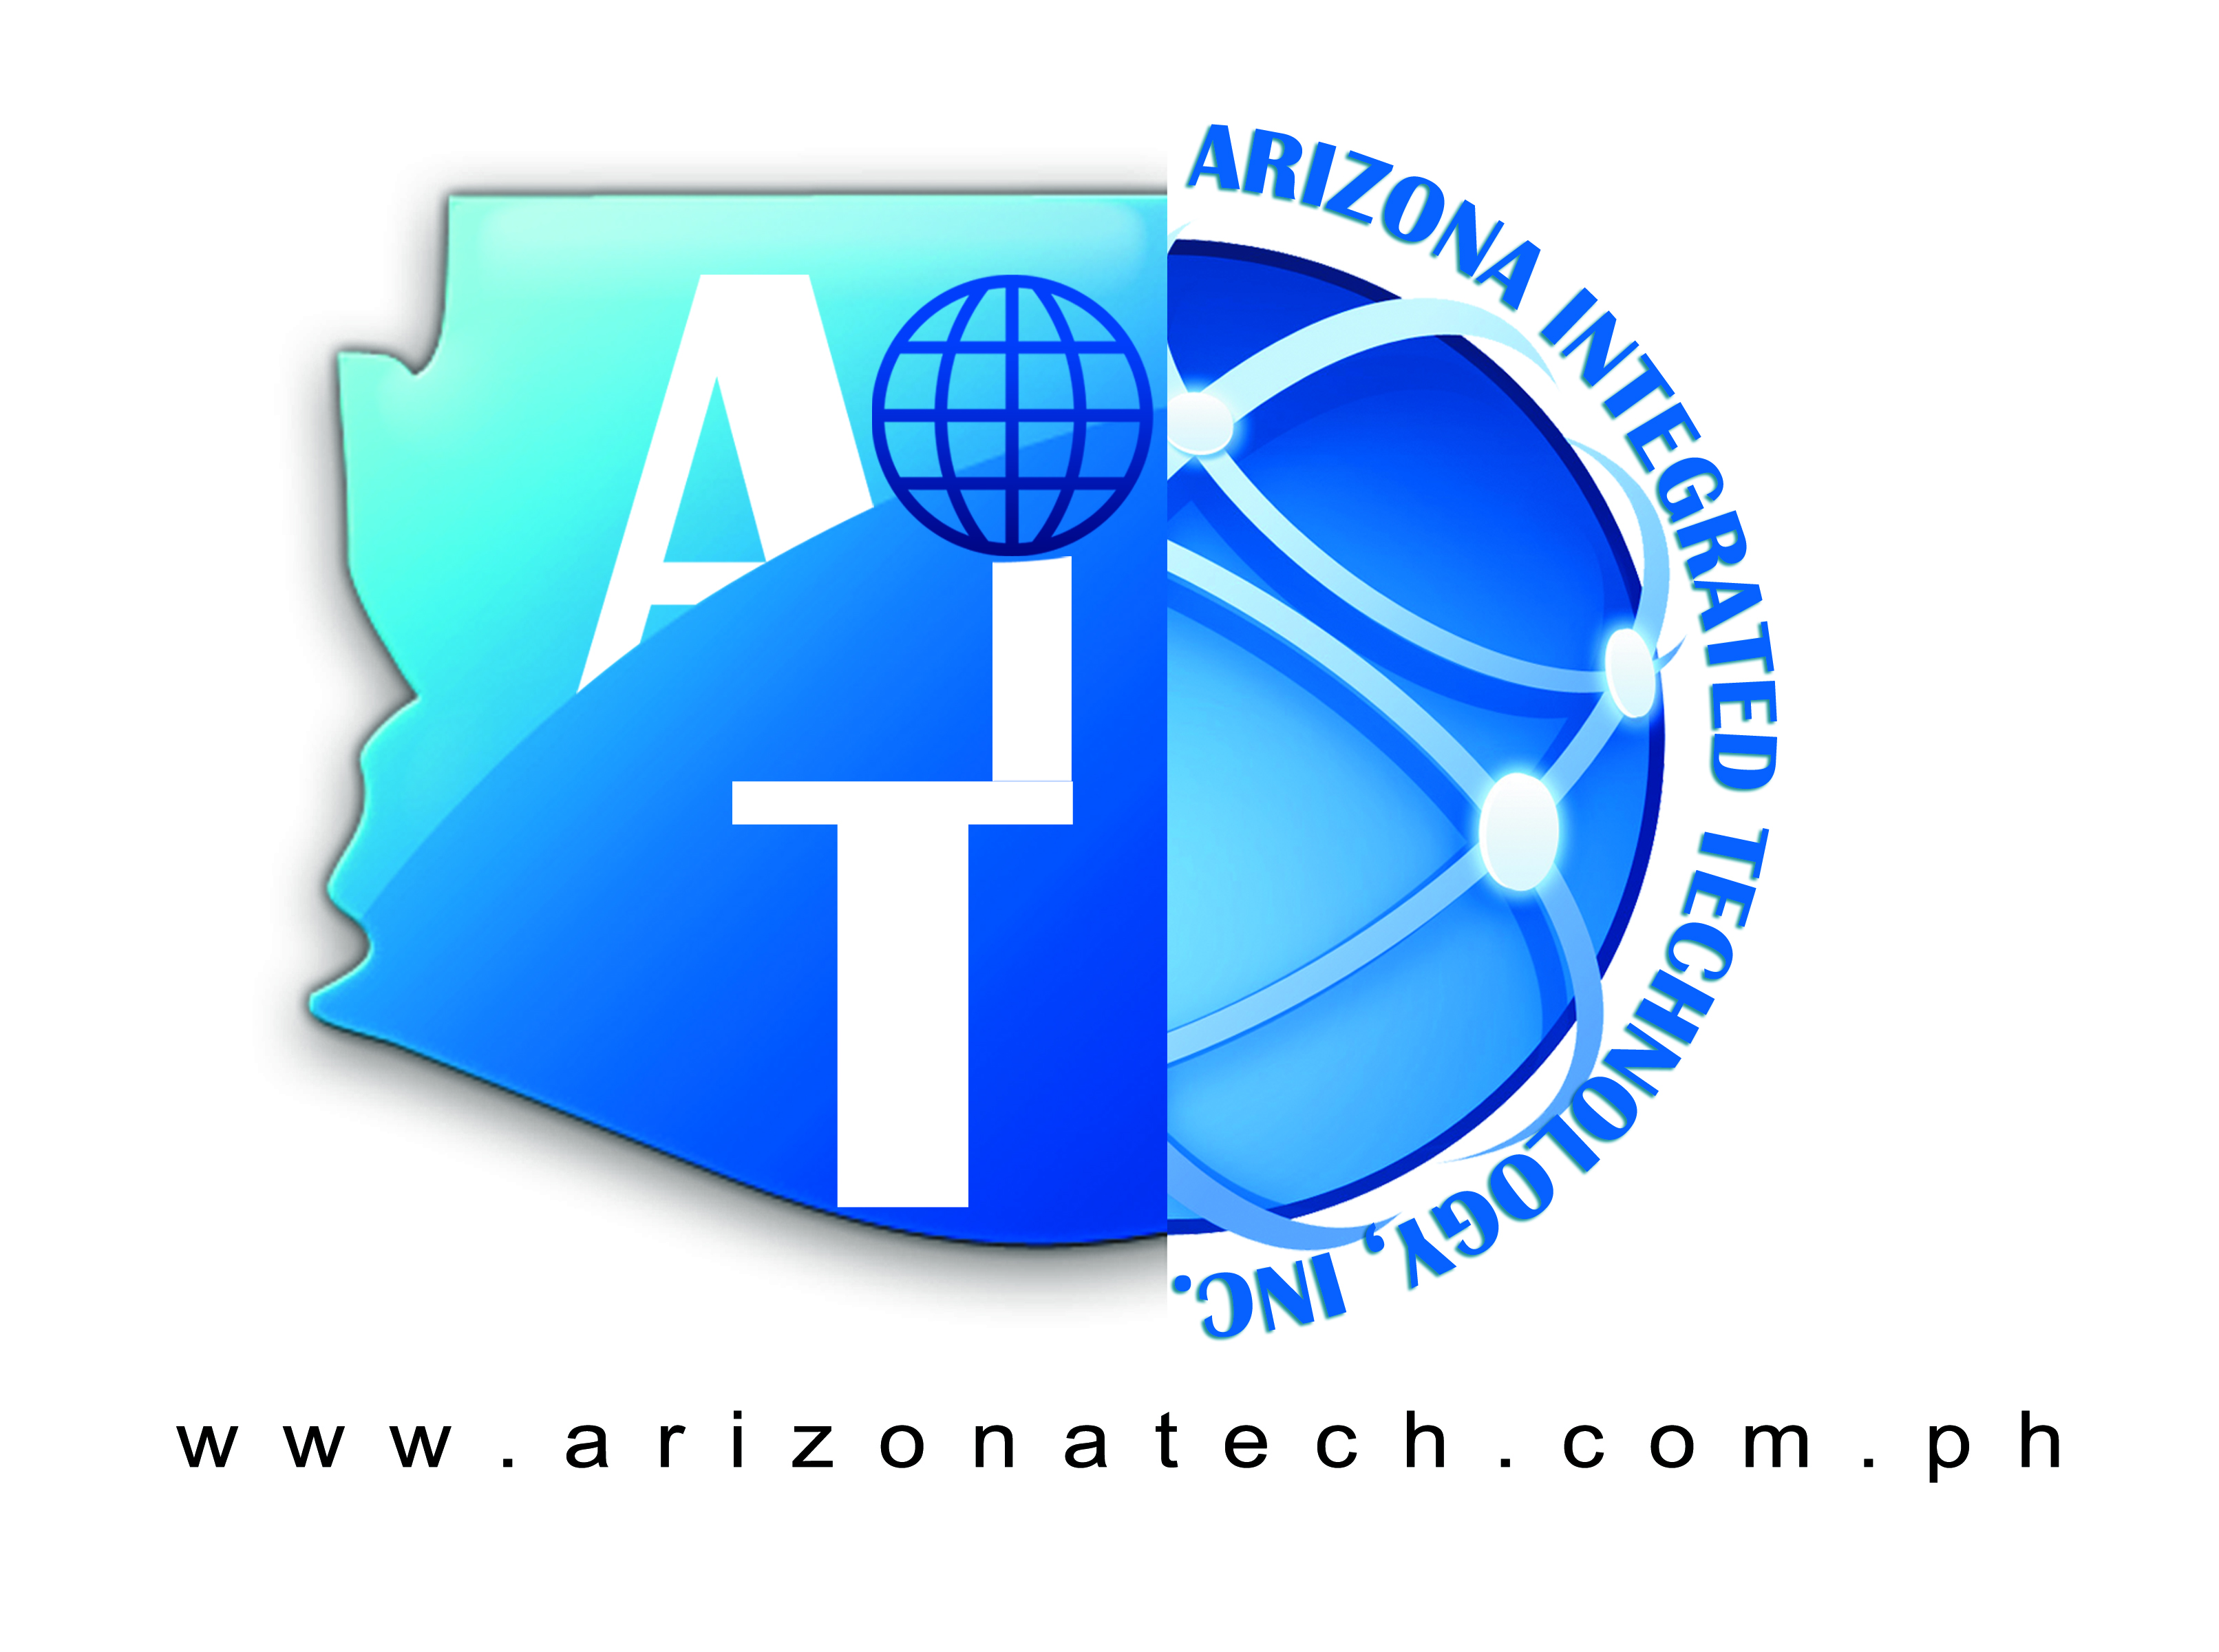 Junior Accountant from Arizona Integrated Technology, Inc.